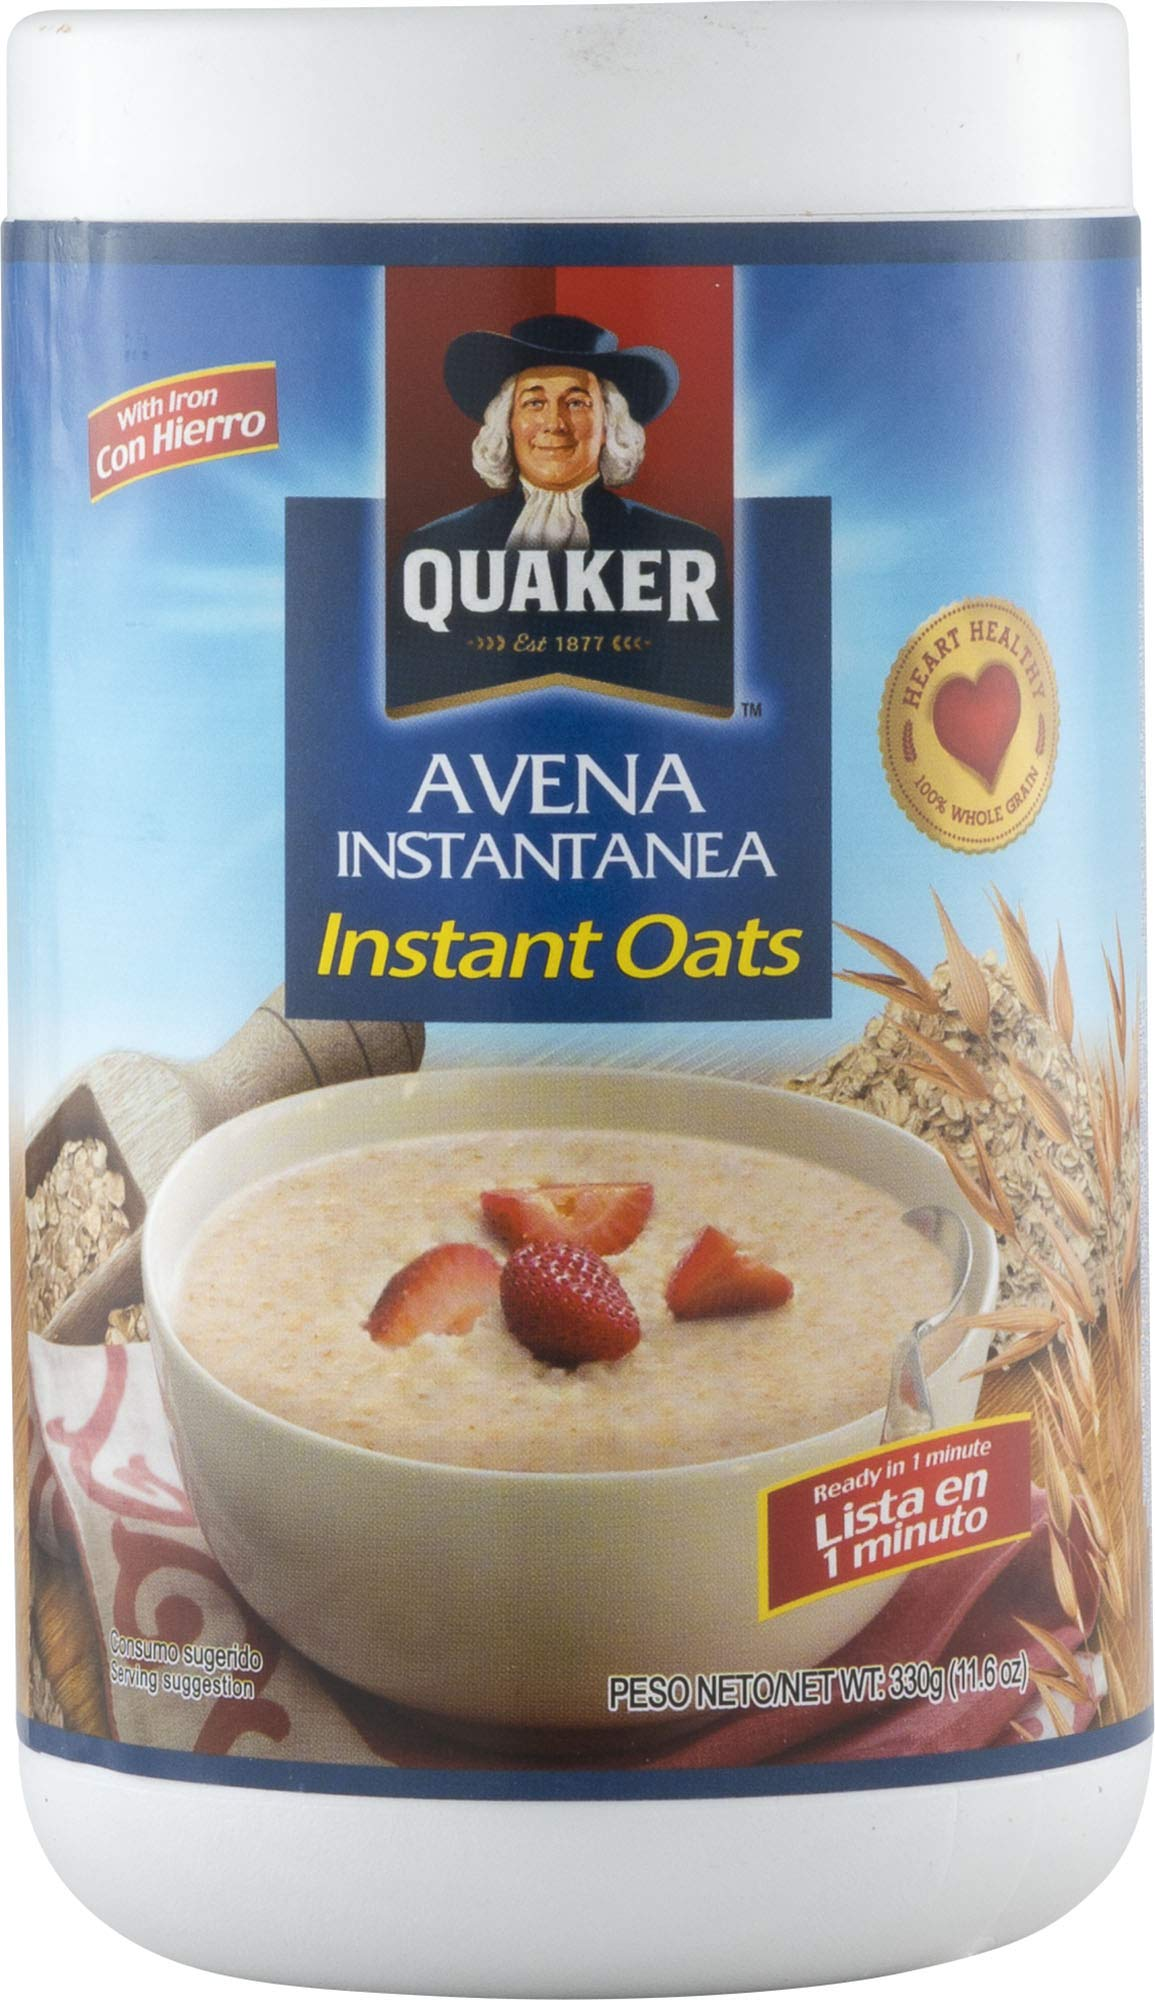 Quaker Avena with Iron 11.6 OZ Instant Oats With Iron Cereal Mix